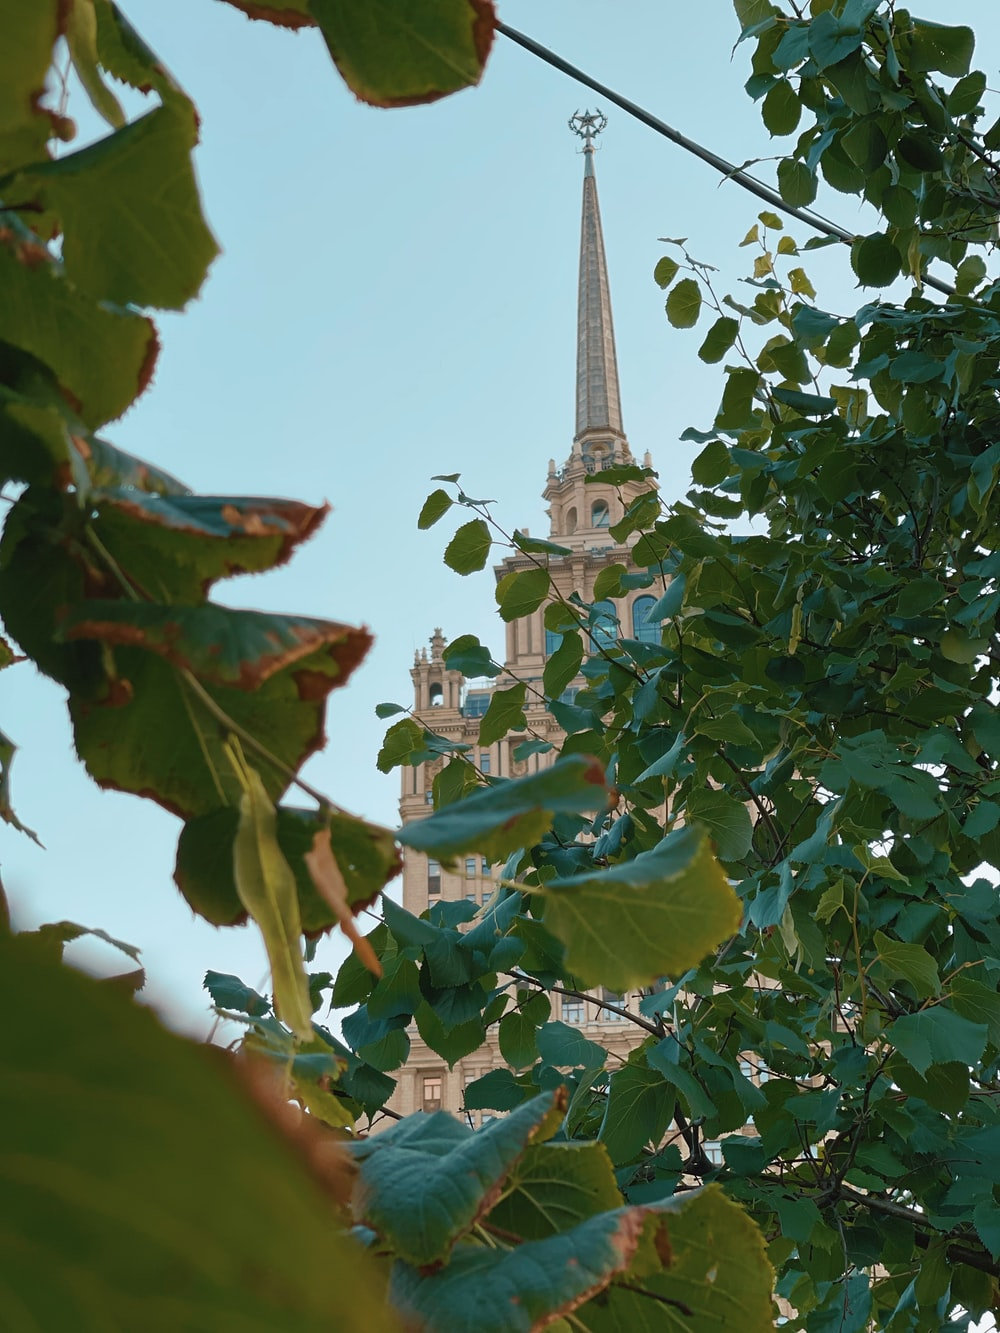 green leaves and white tower